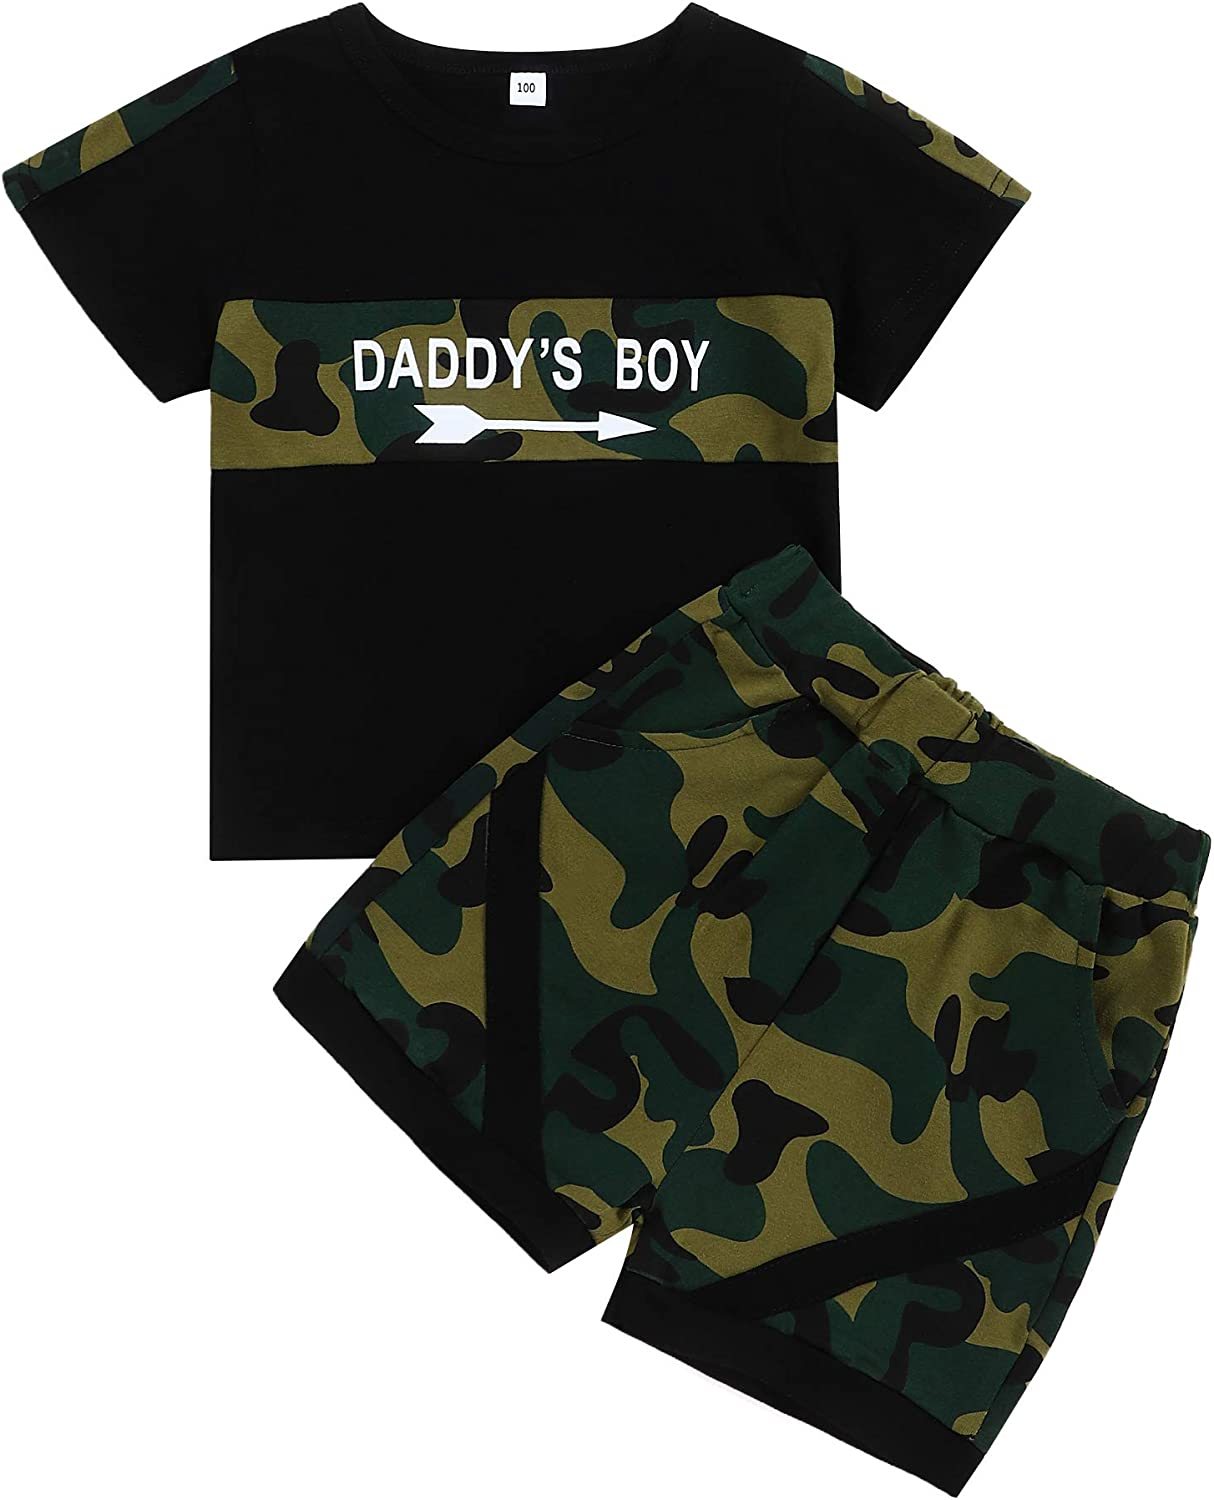 Toddler Baby Boy Clothes Summer Outfits Daddy Boy Clothing Short Sleeve Tshirt Top Shorts Set